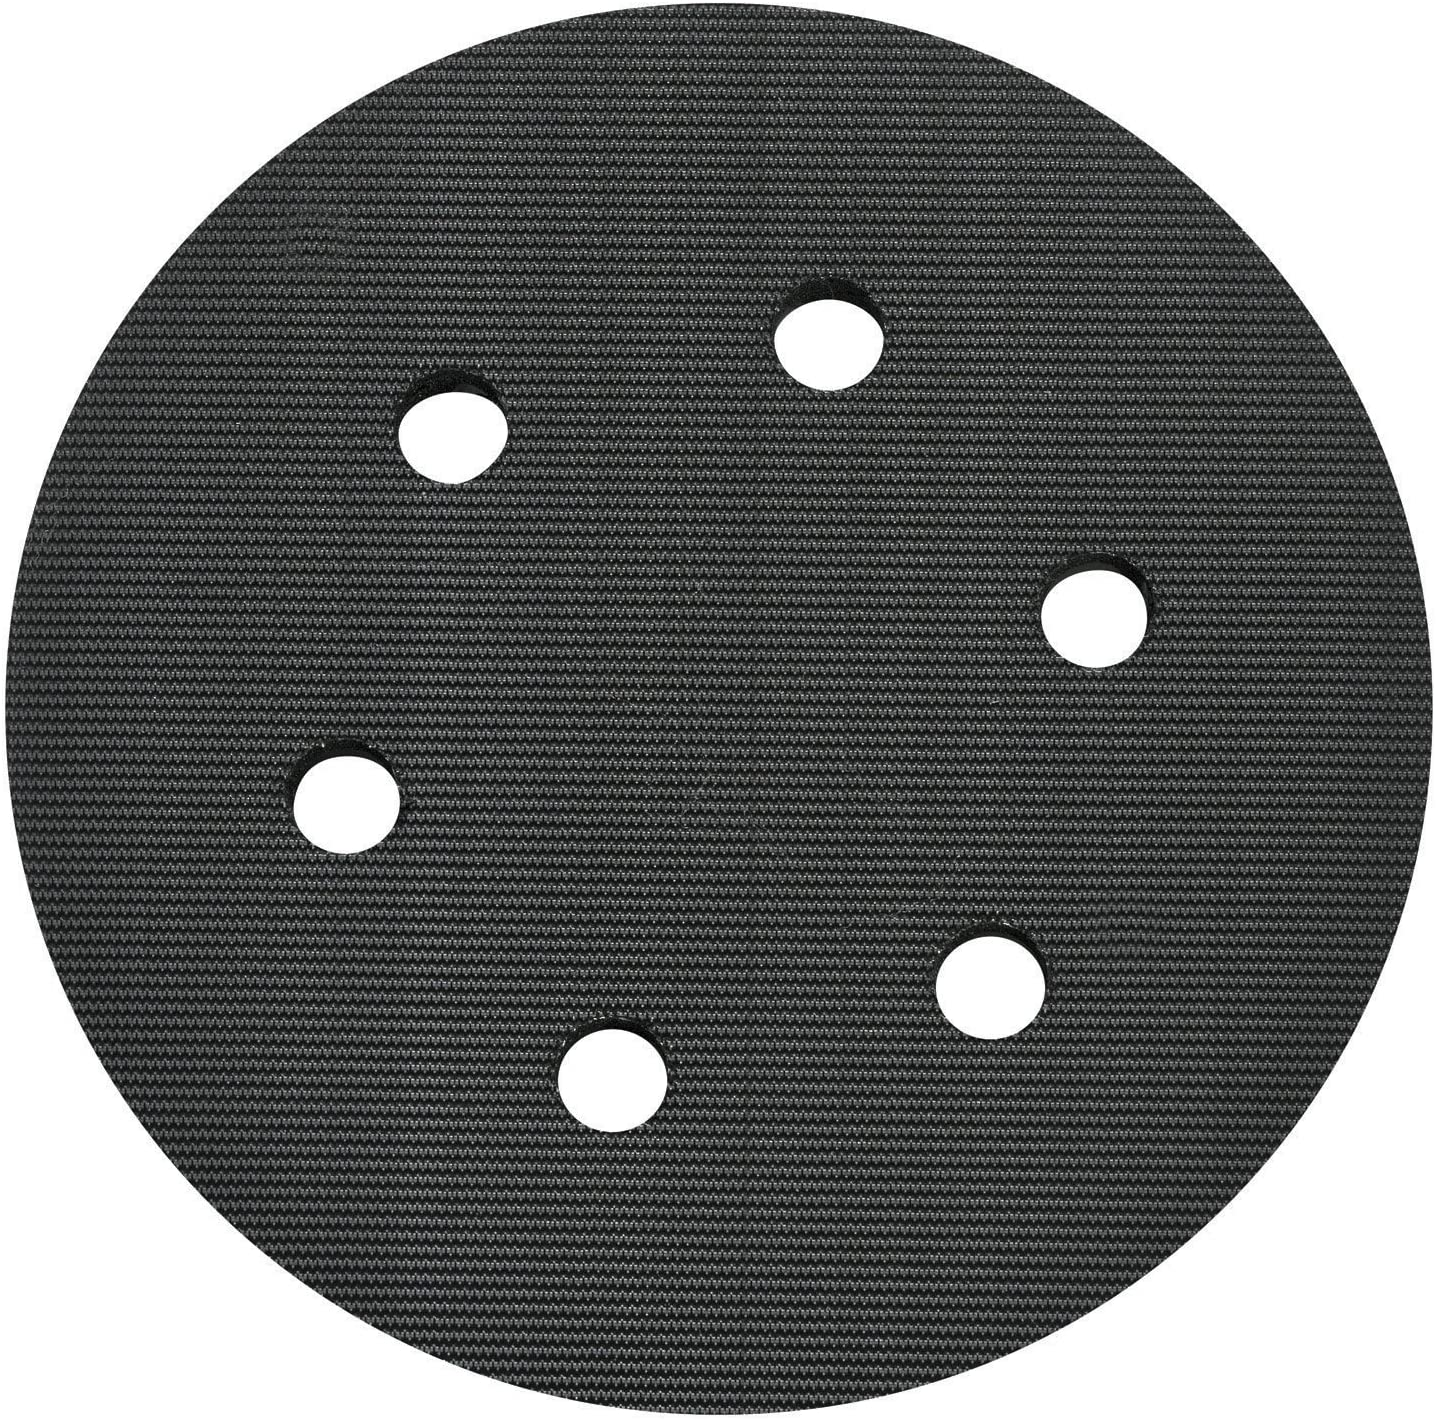 B00004Y772 PORTER-CABLE 18001 6-Inch 6-Hole Hook and Loop Standard Pad for 7336 and 97366 Random Orbit Sander 91QfJaeHcWL